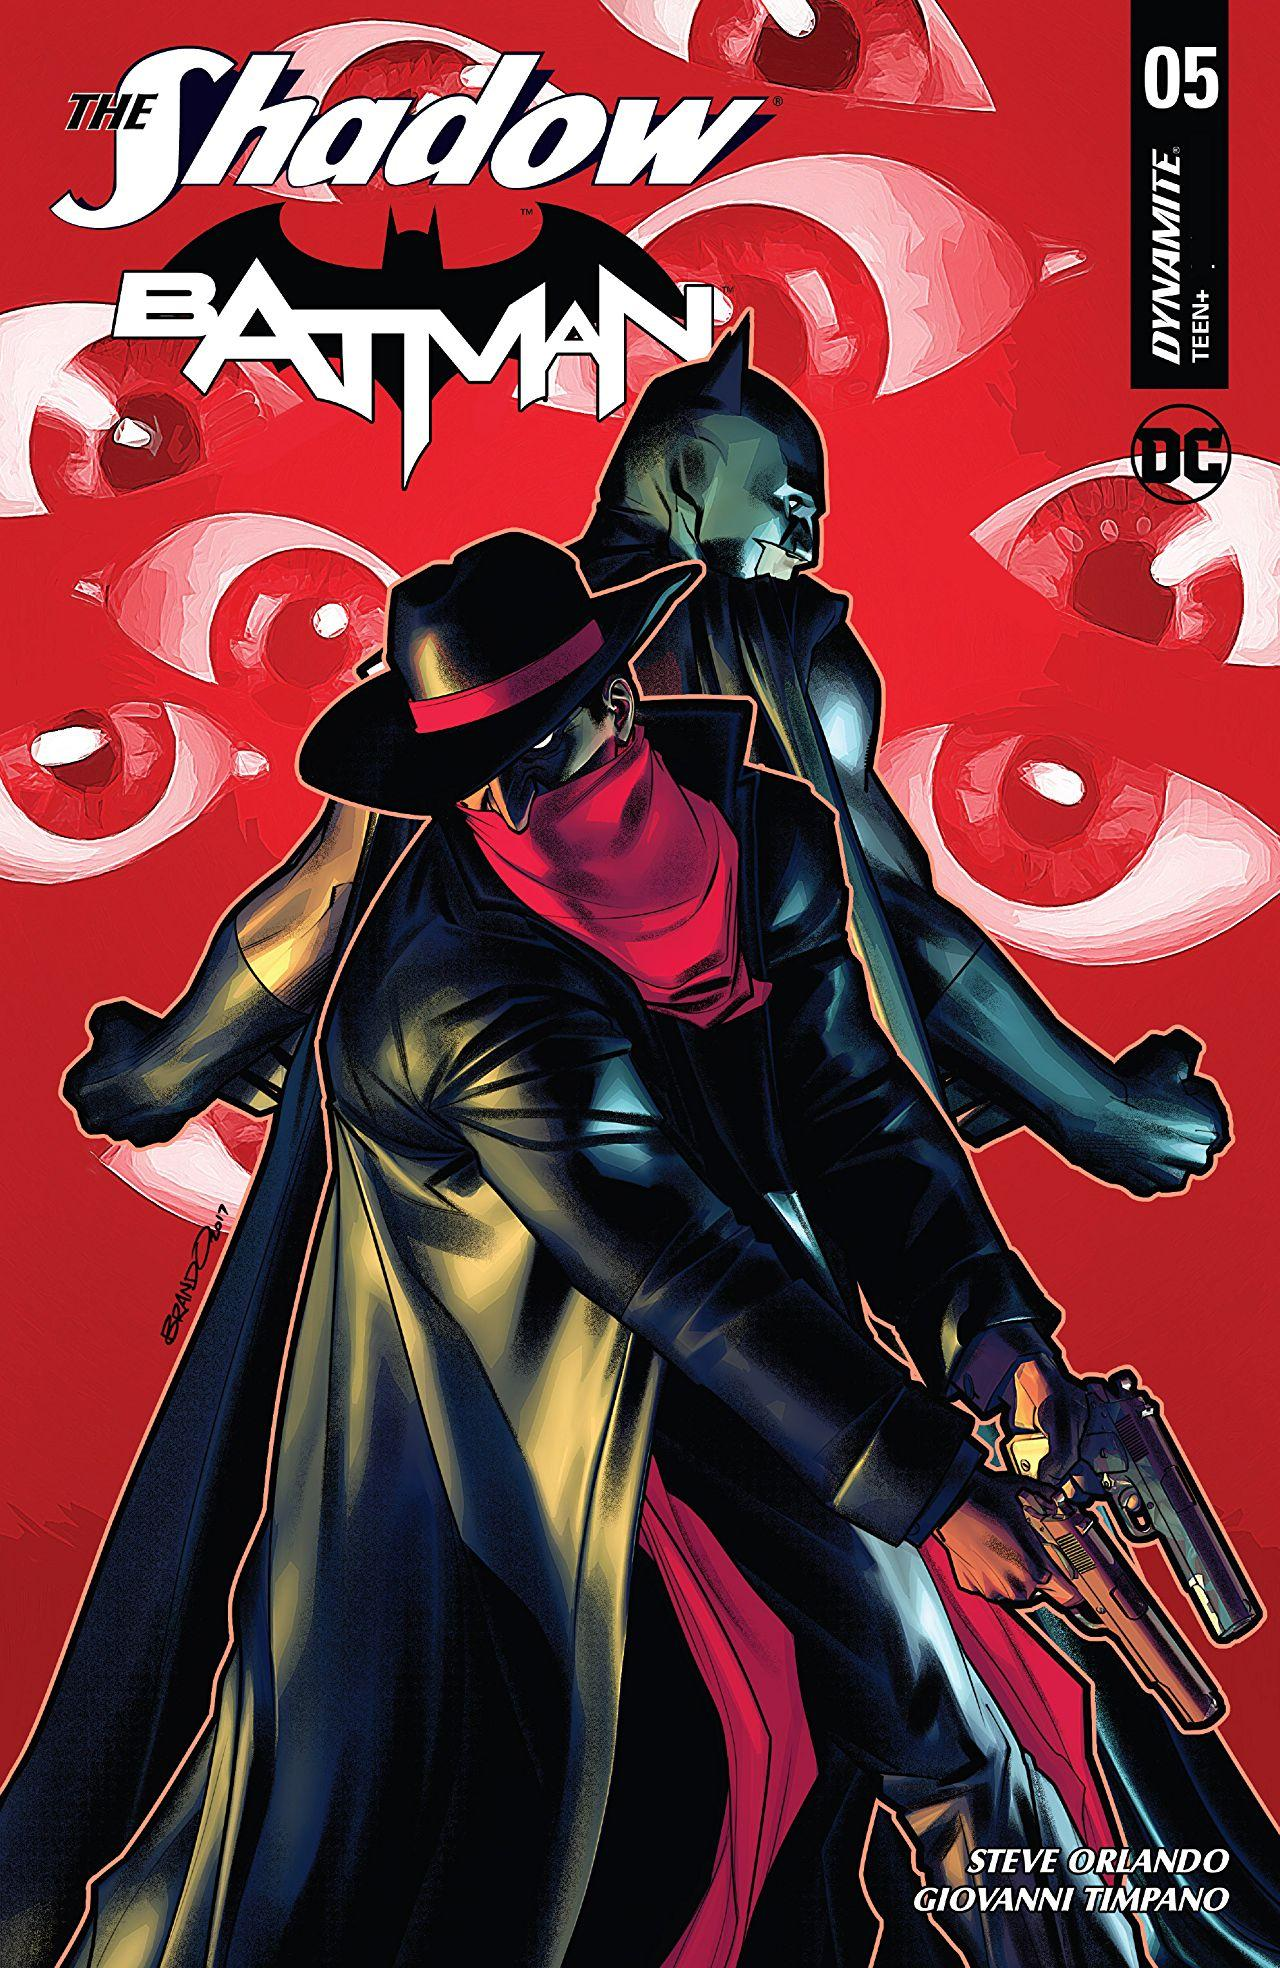 The Shadow/Batman Vol. 1 #5